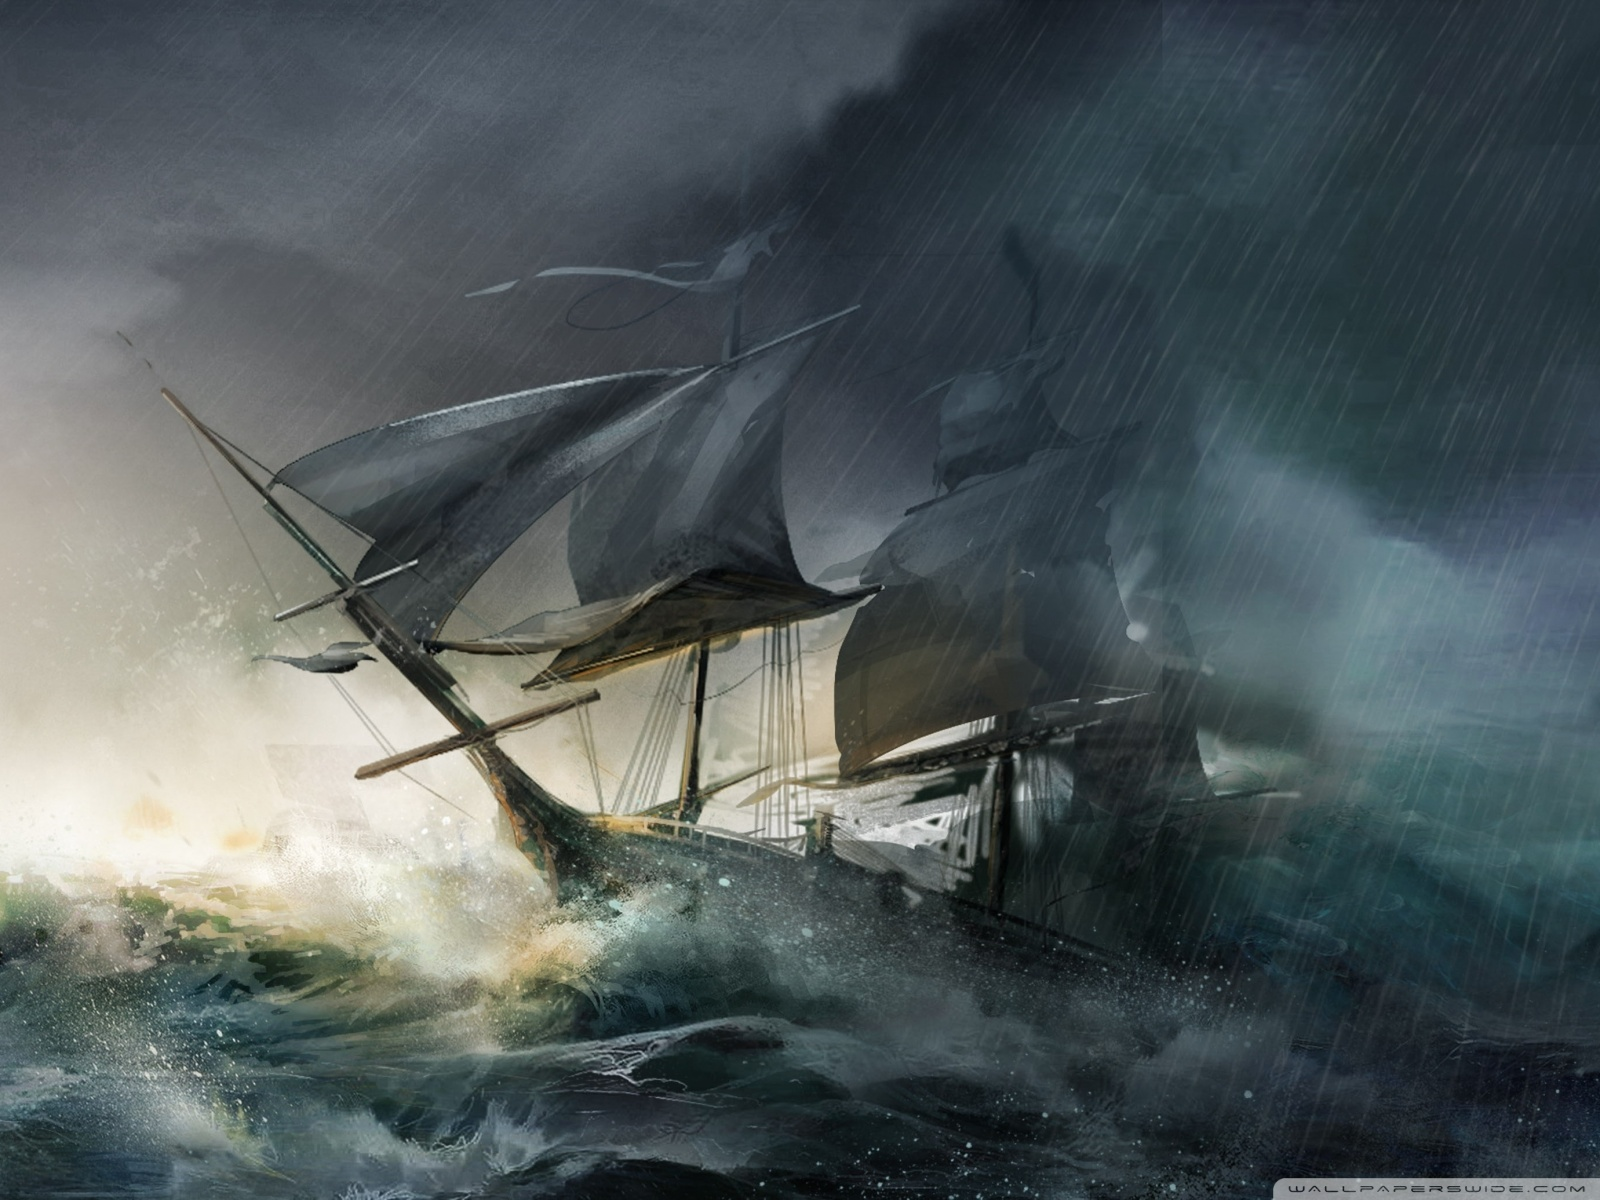 Sinking Pirate Ship pirate ship painting top hd images for free